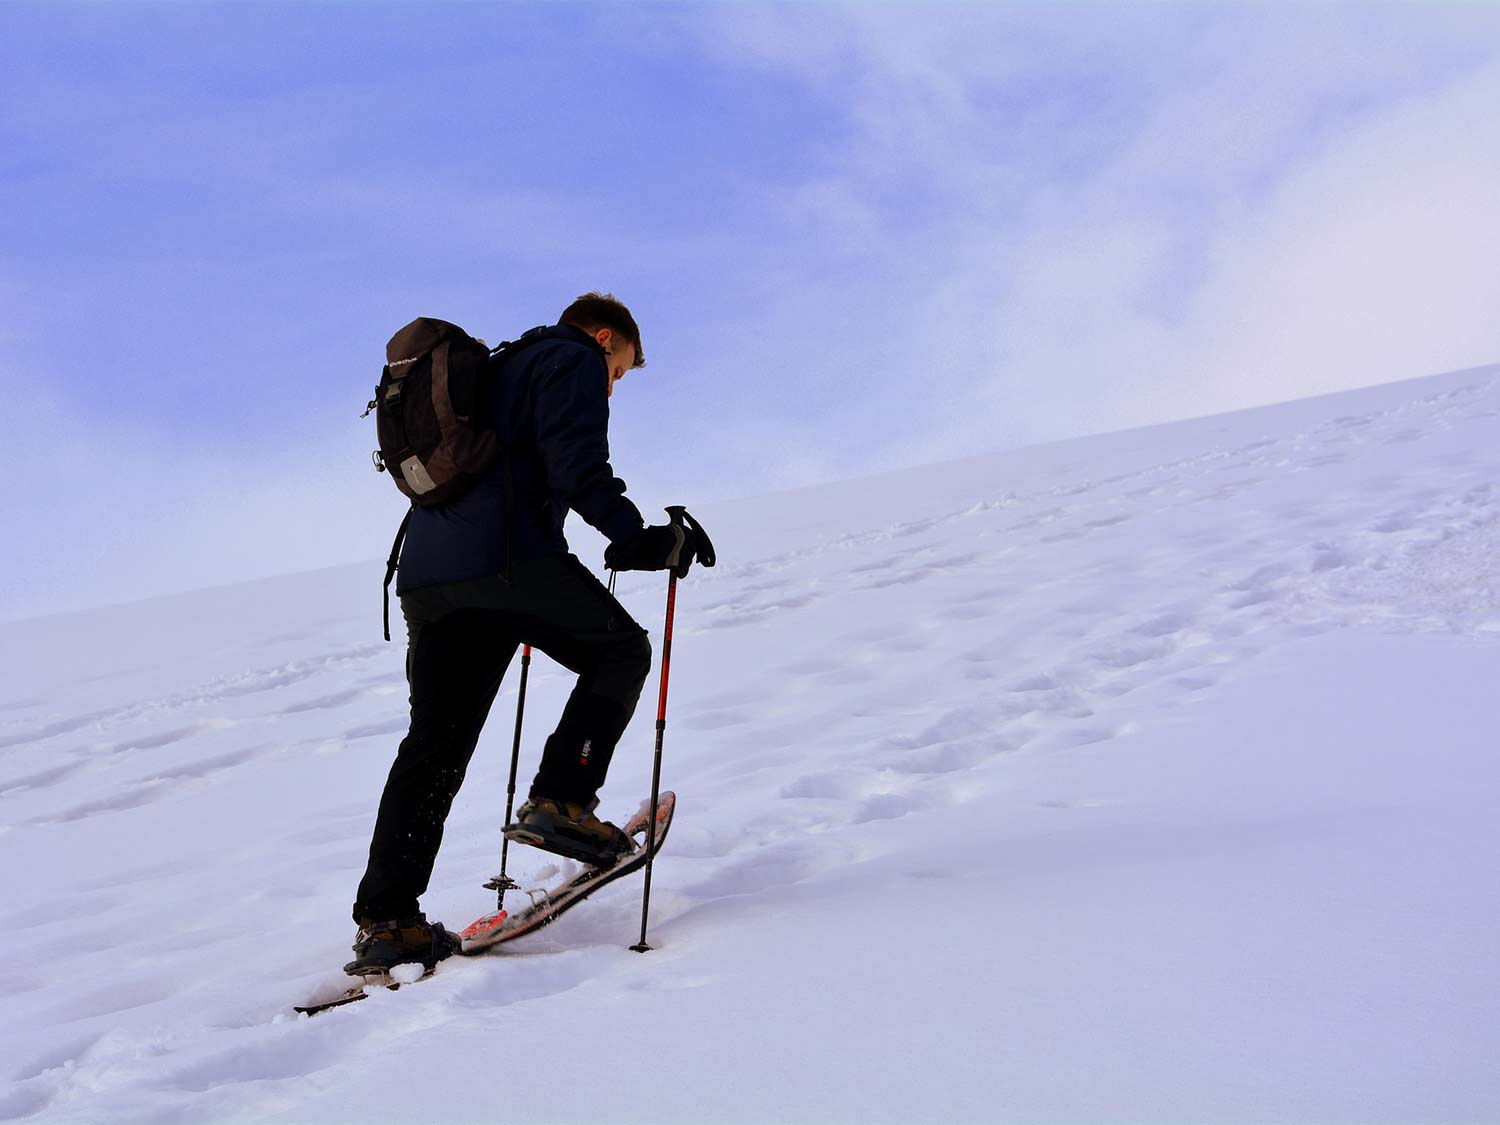 A hiker walks up a hill of snow wearing the best snowshoes.